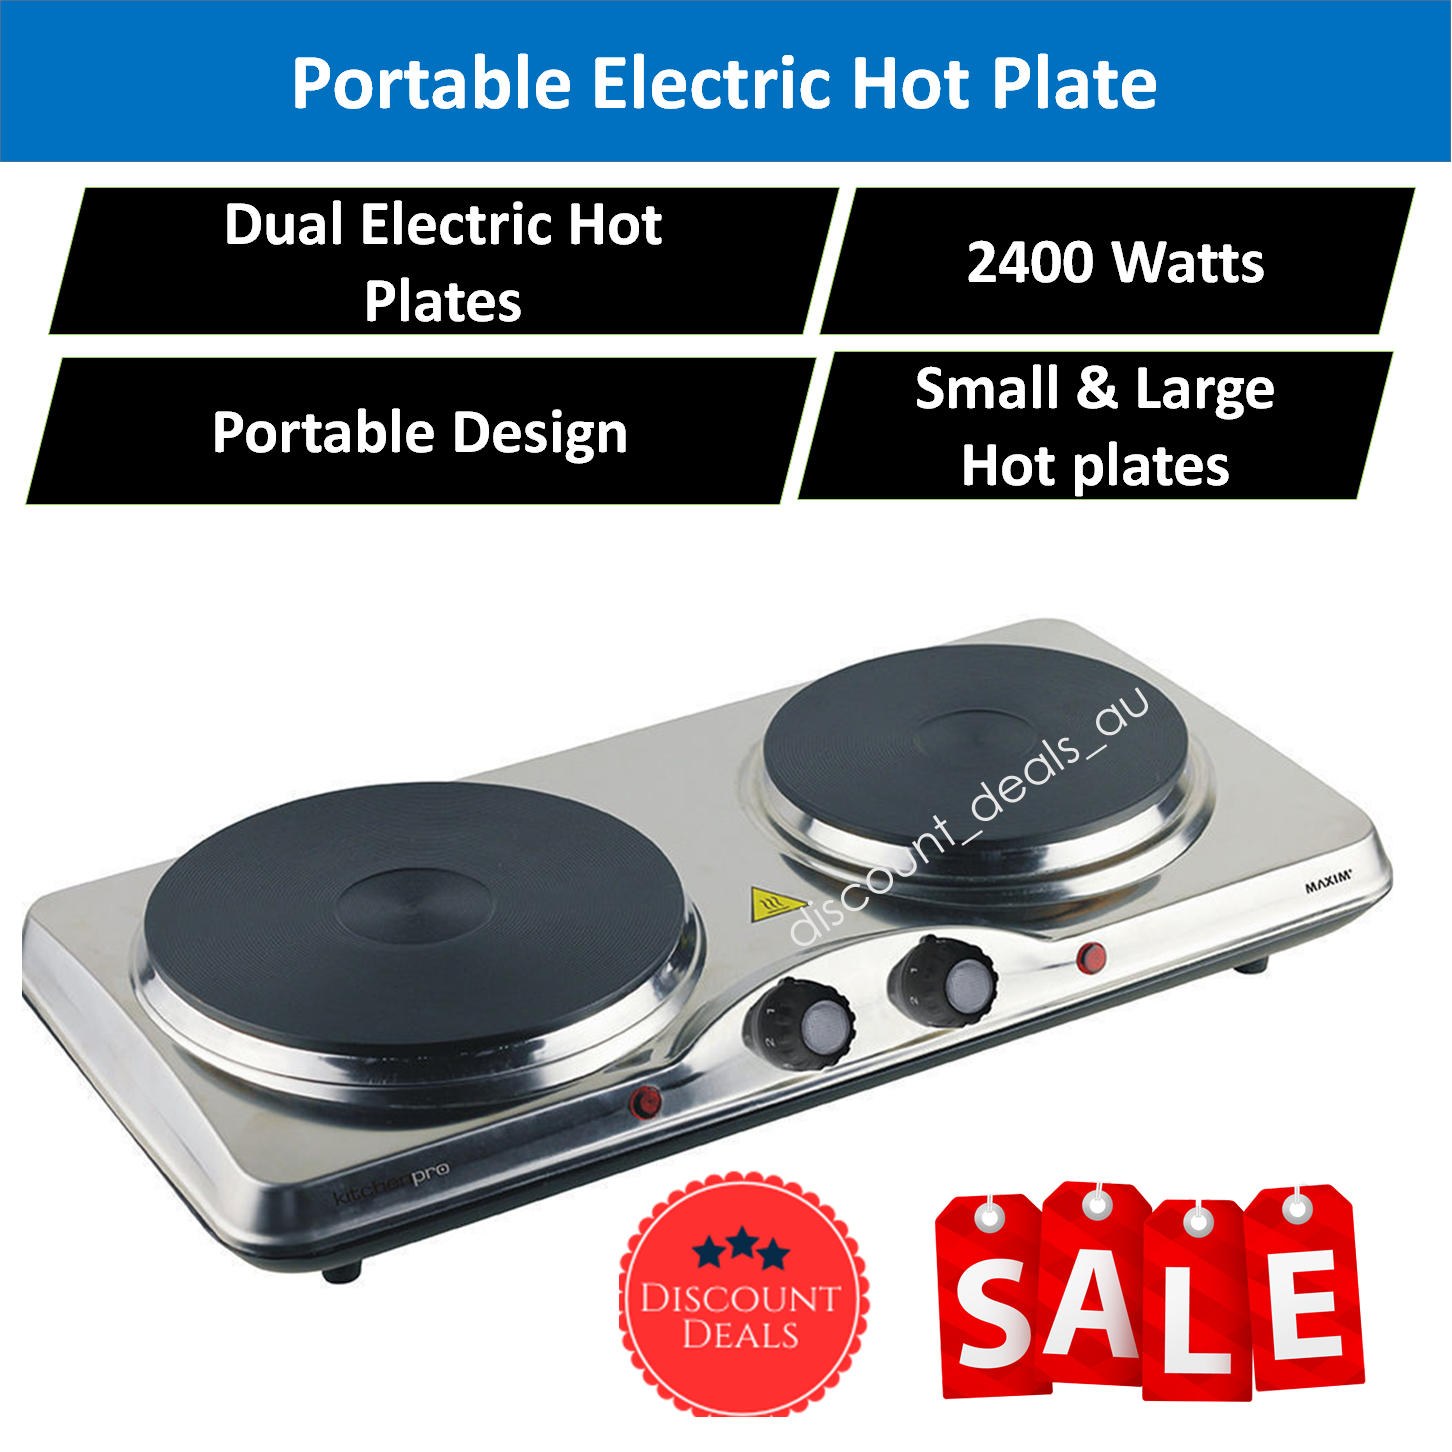 Cooking Is A Breeze With The Maxim Portable Double Hotplate. This Great  Device Is Ideal For As An Extra Cook Top For The Home, Workshop Or Office  And Much ...